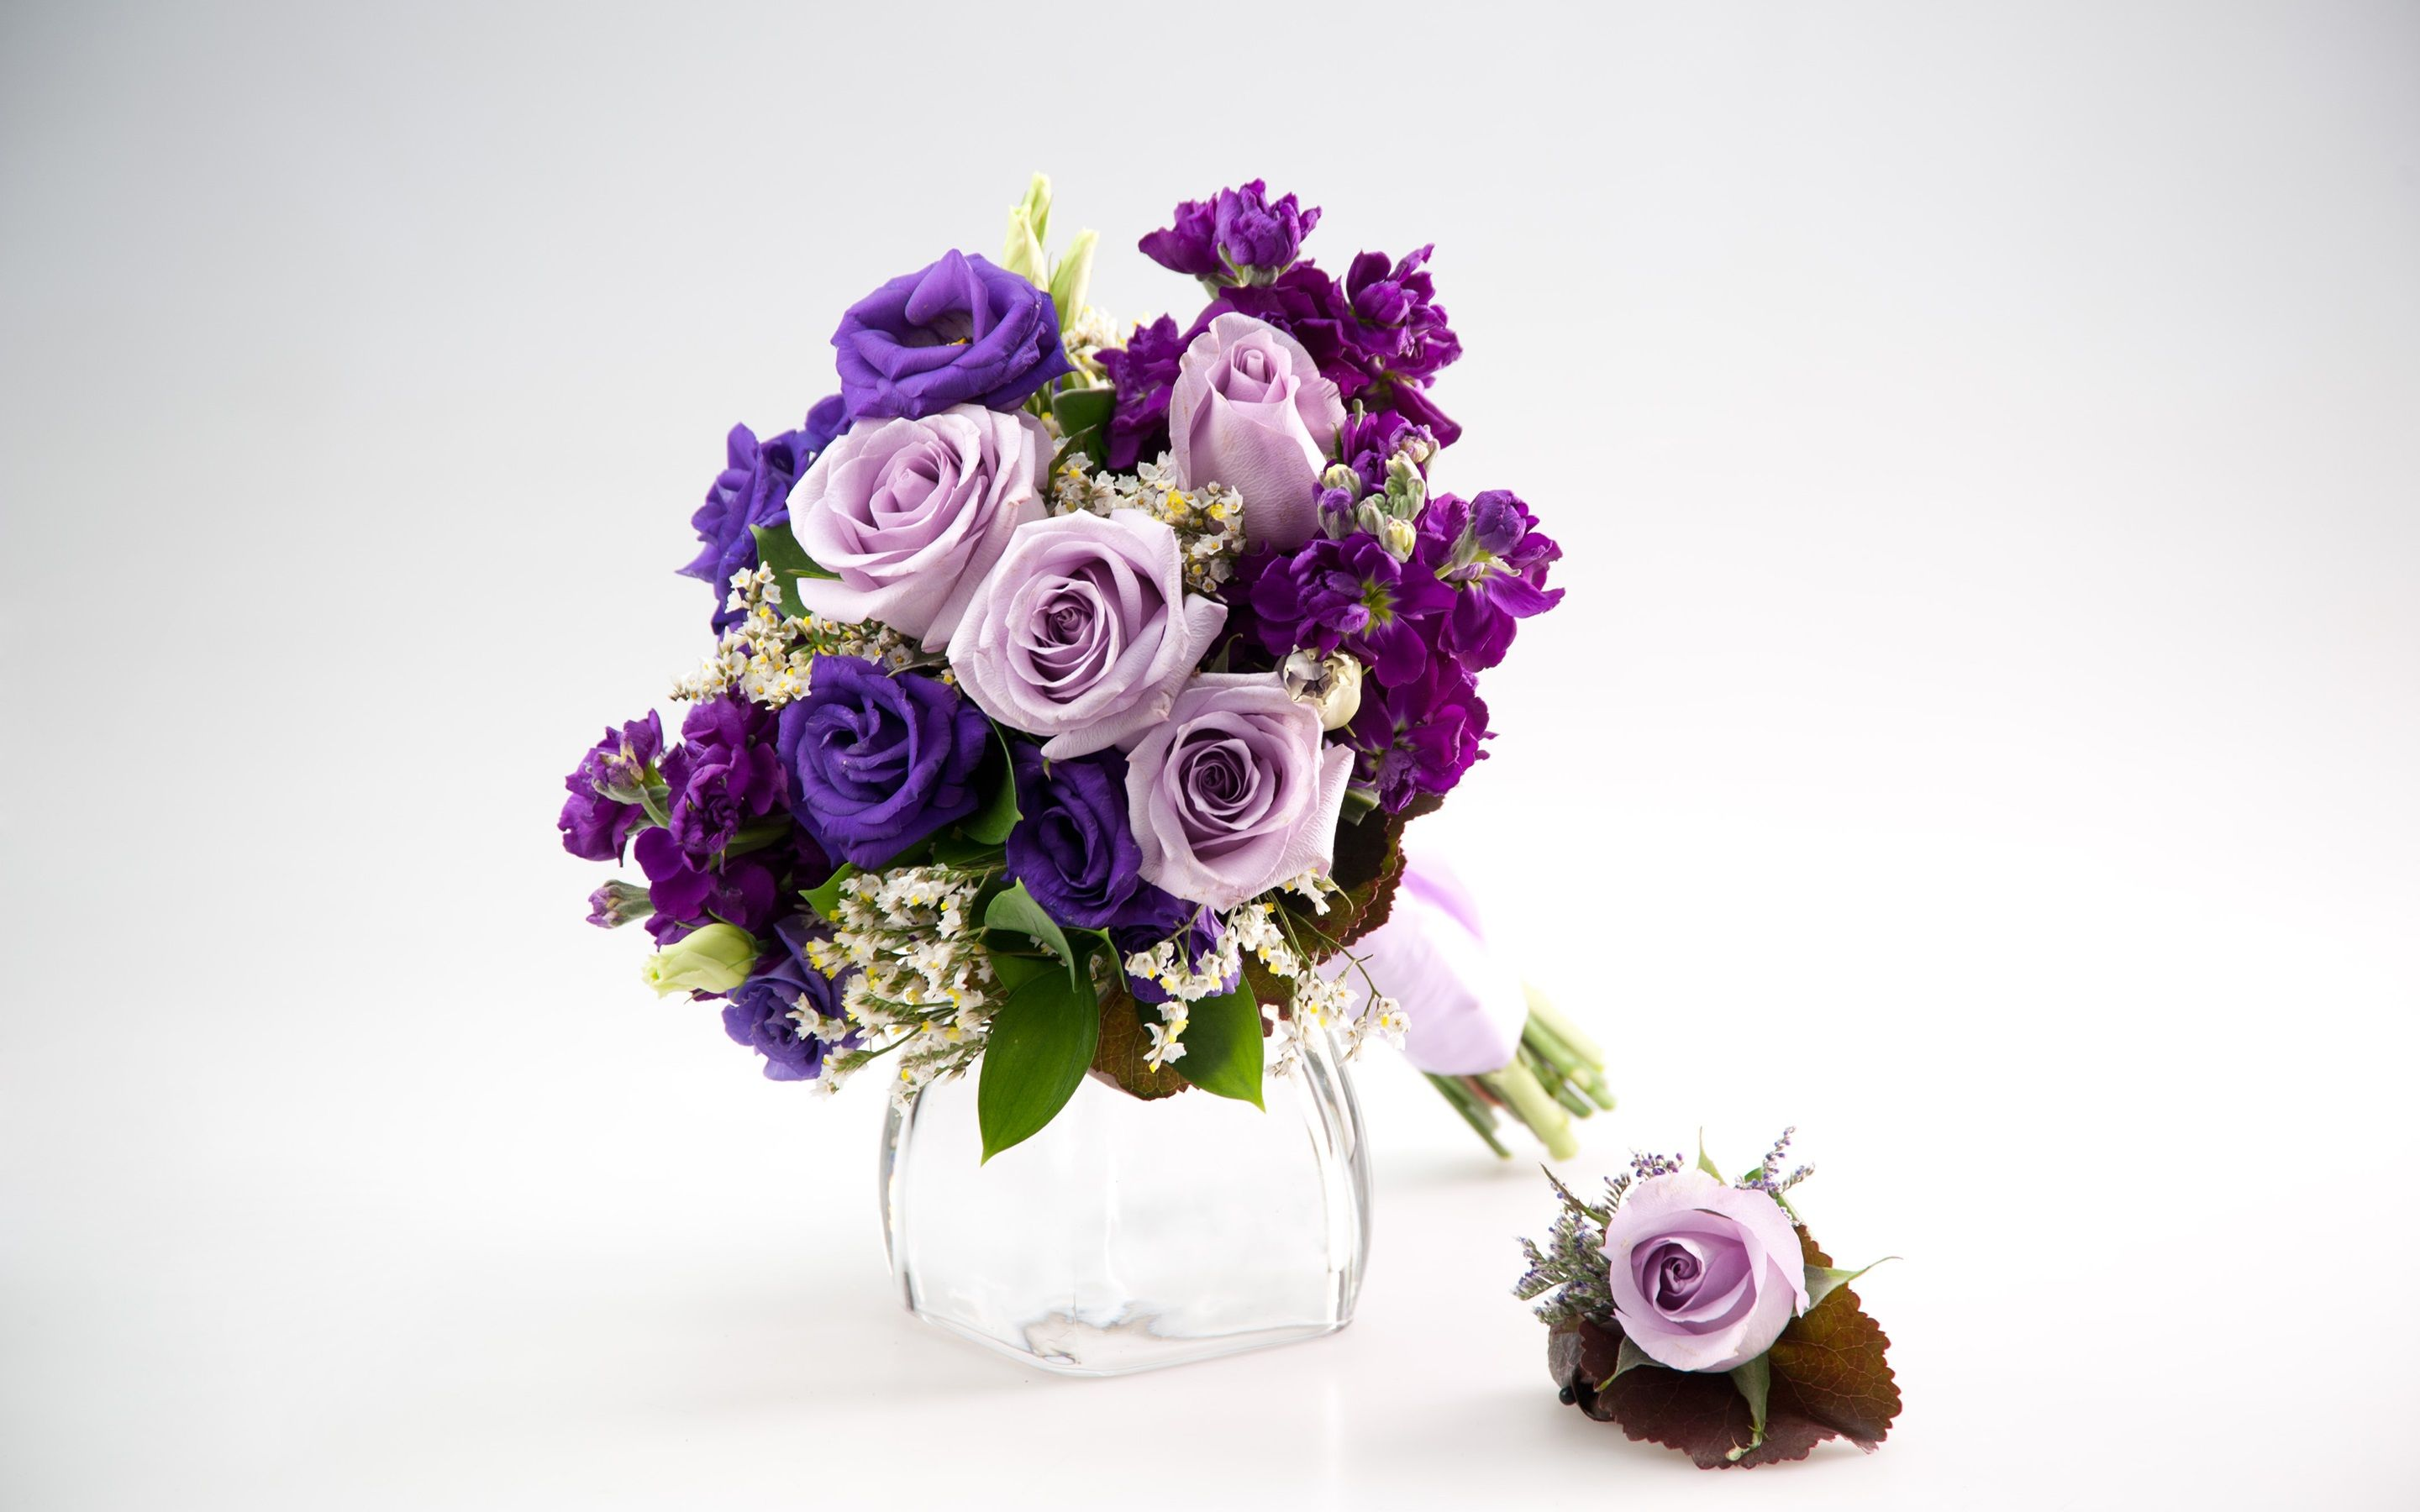 A Lovely Lavender Bouquet To Complement You On Your Day